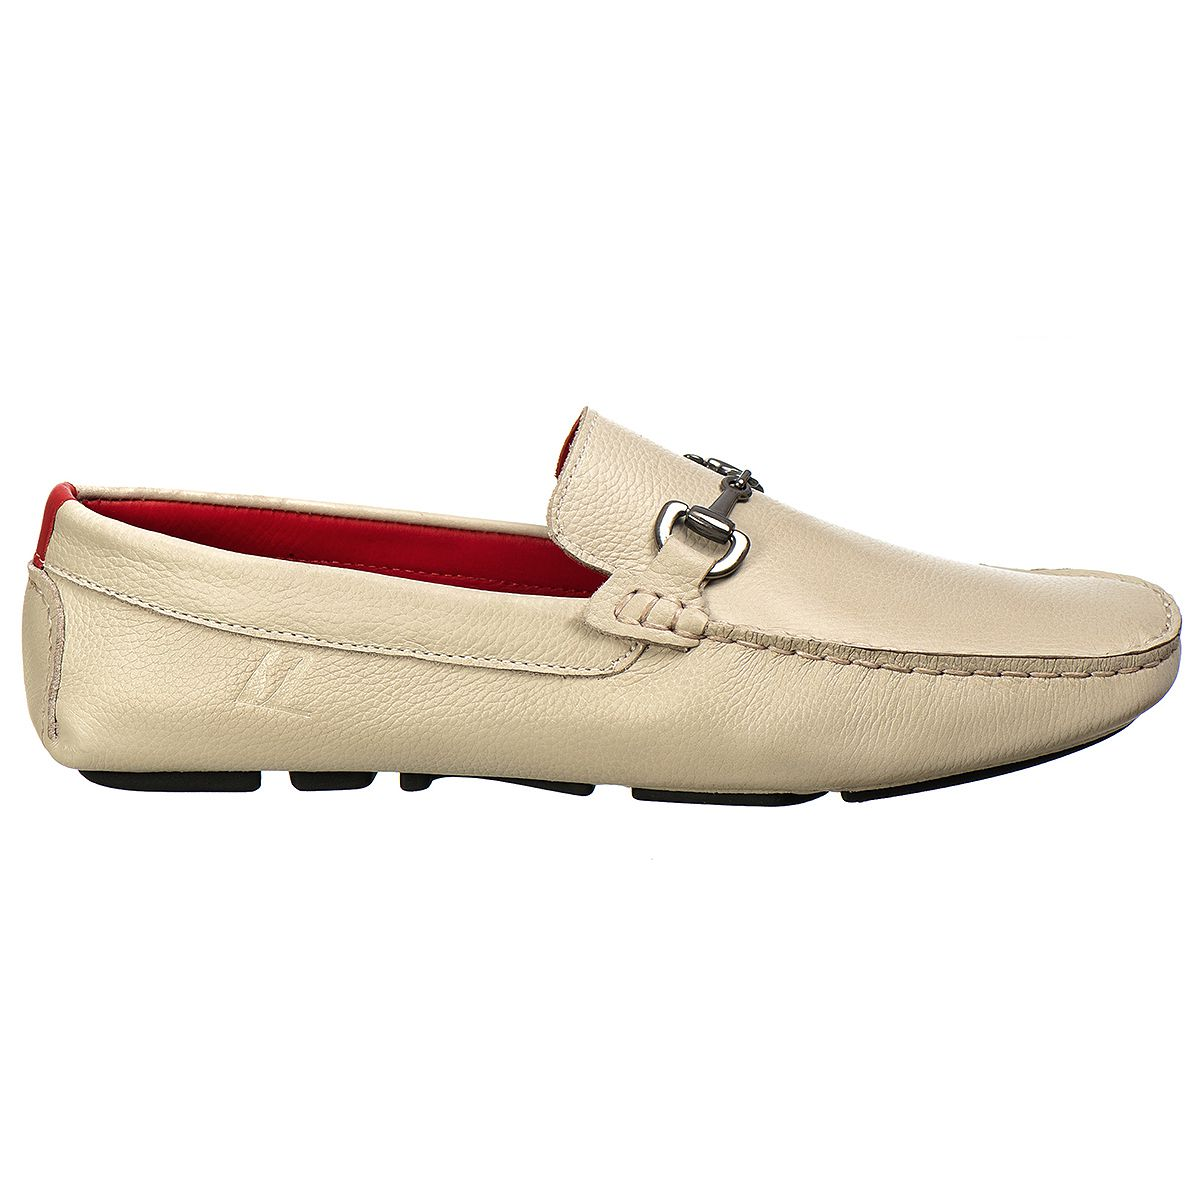 Mocassim Driver Masculino em Couro Floather Gelo Rocco Lorenzzo - 4496